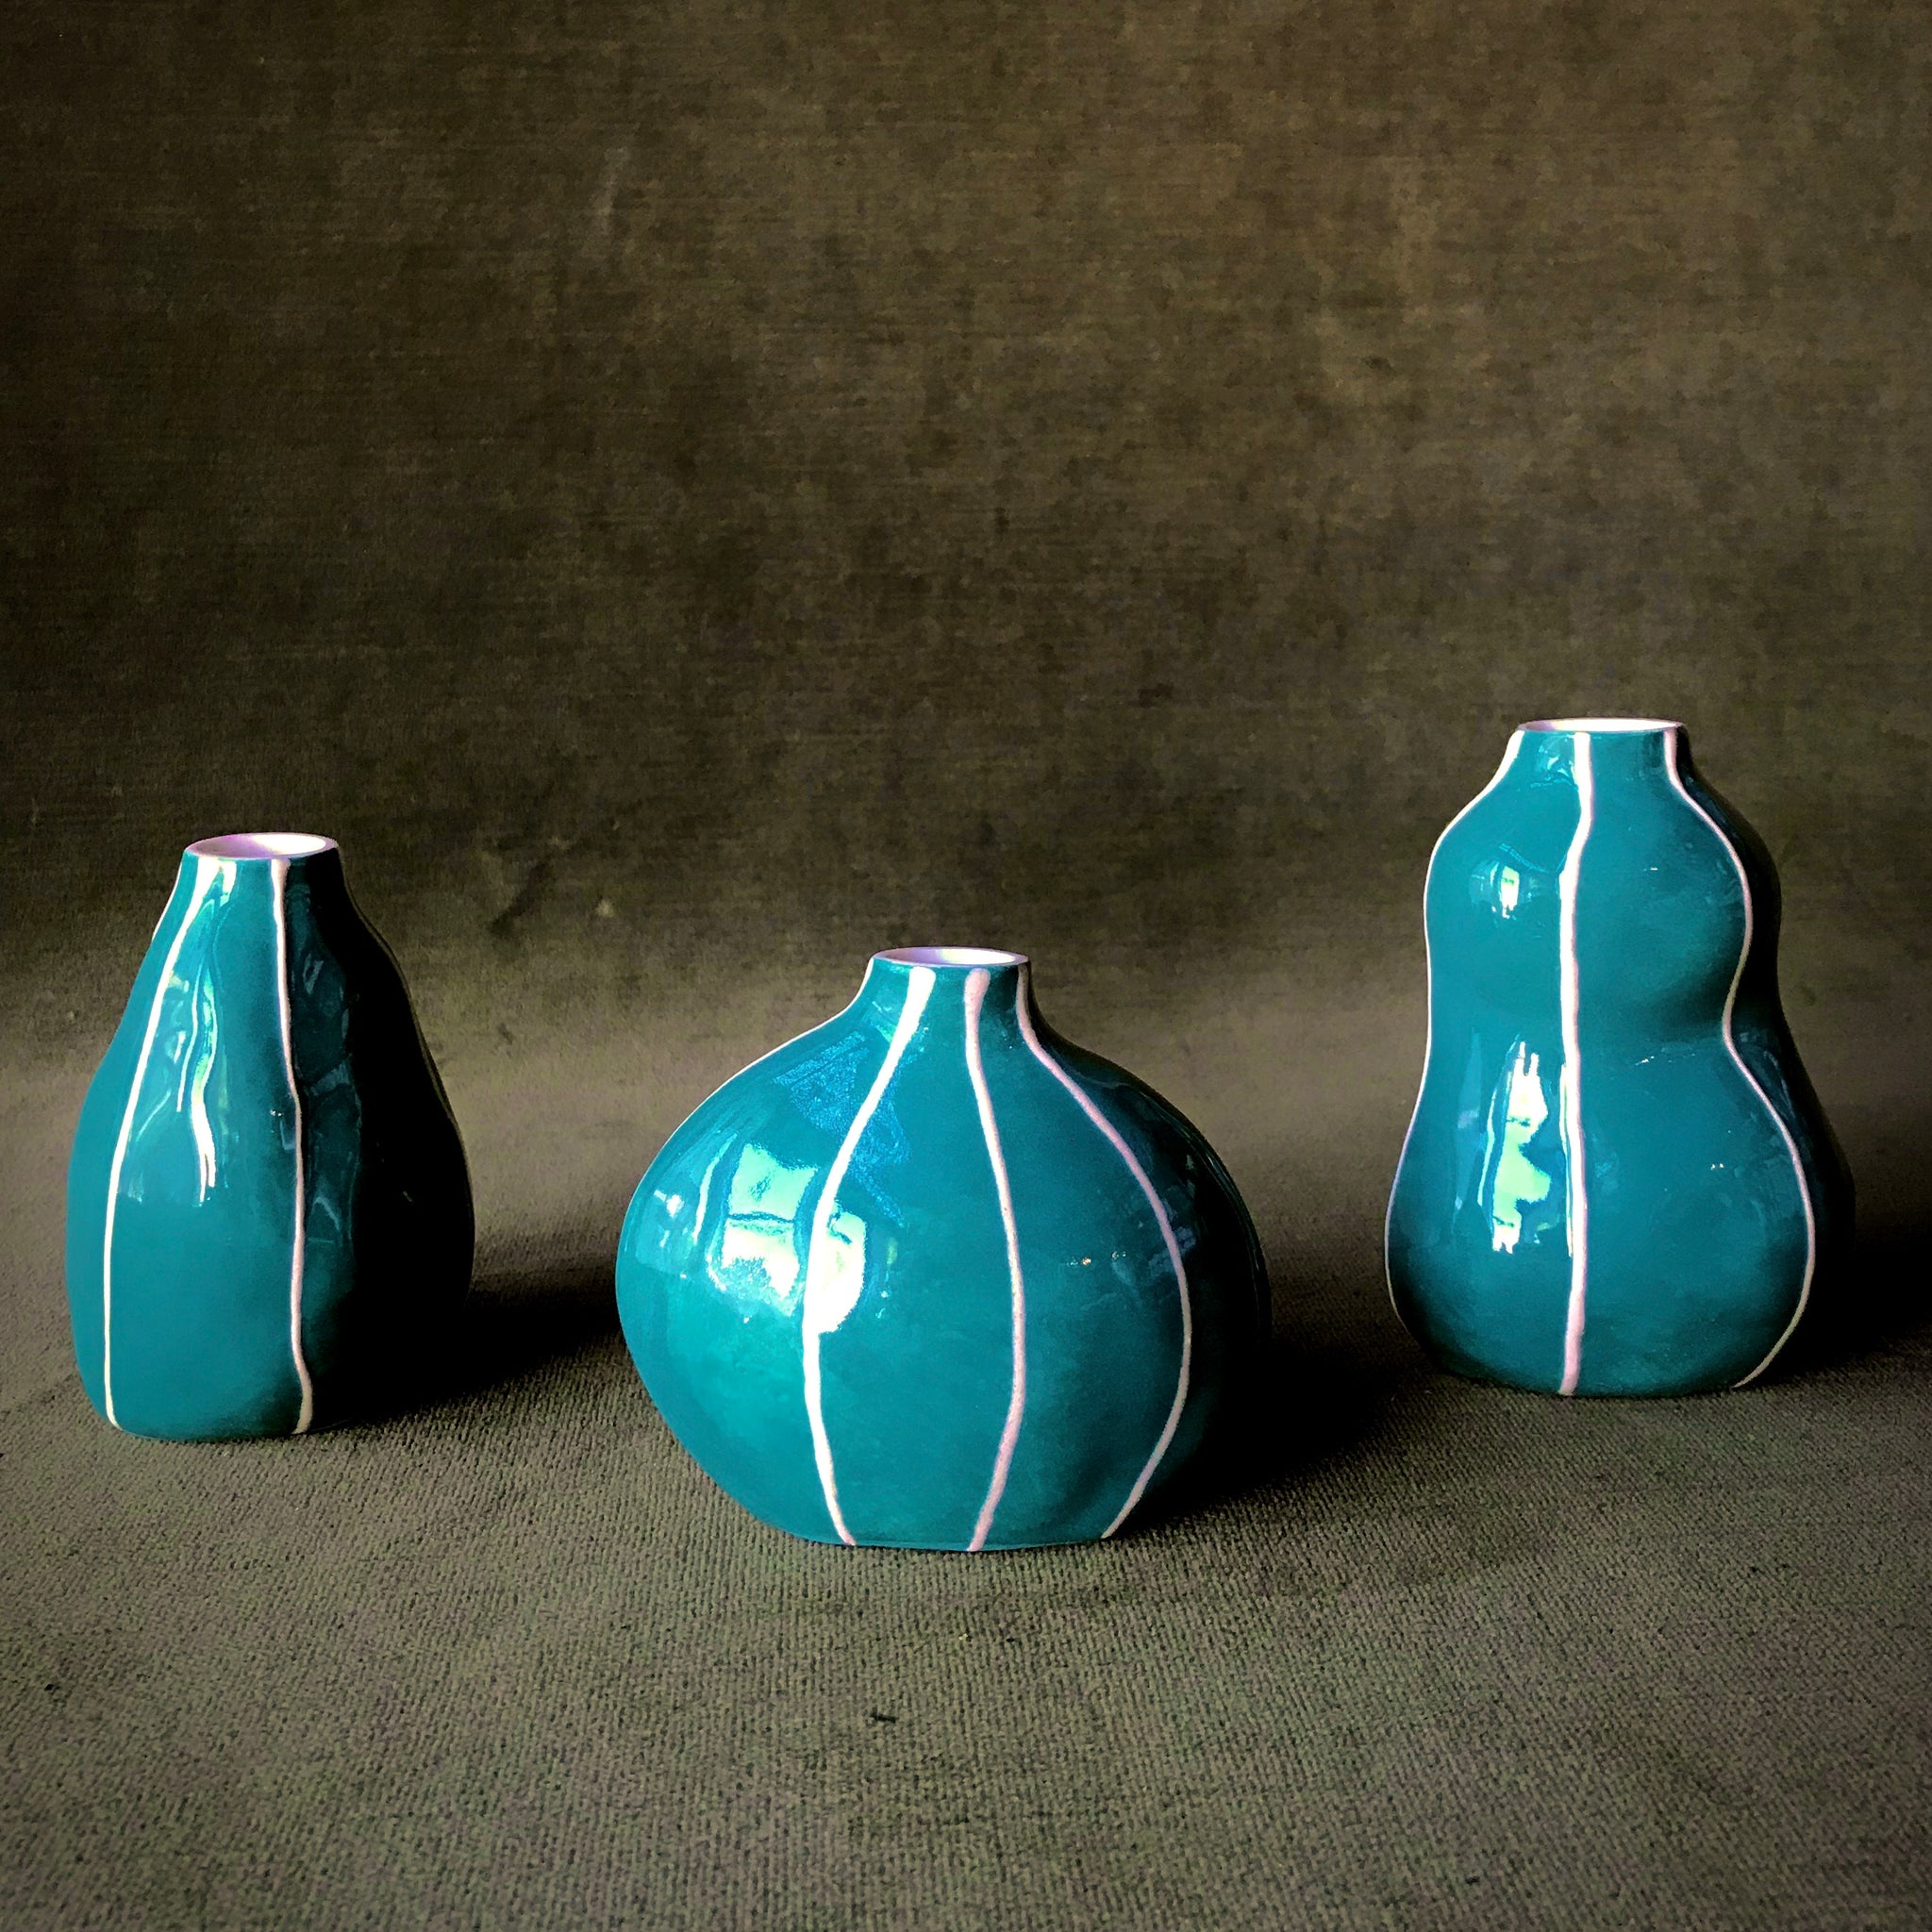 Teal Bud Vases by Kri Kri Studio